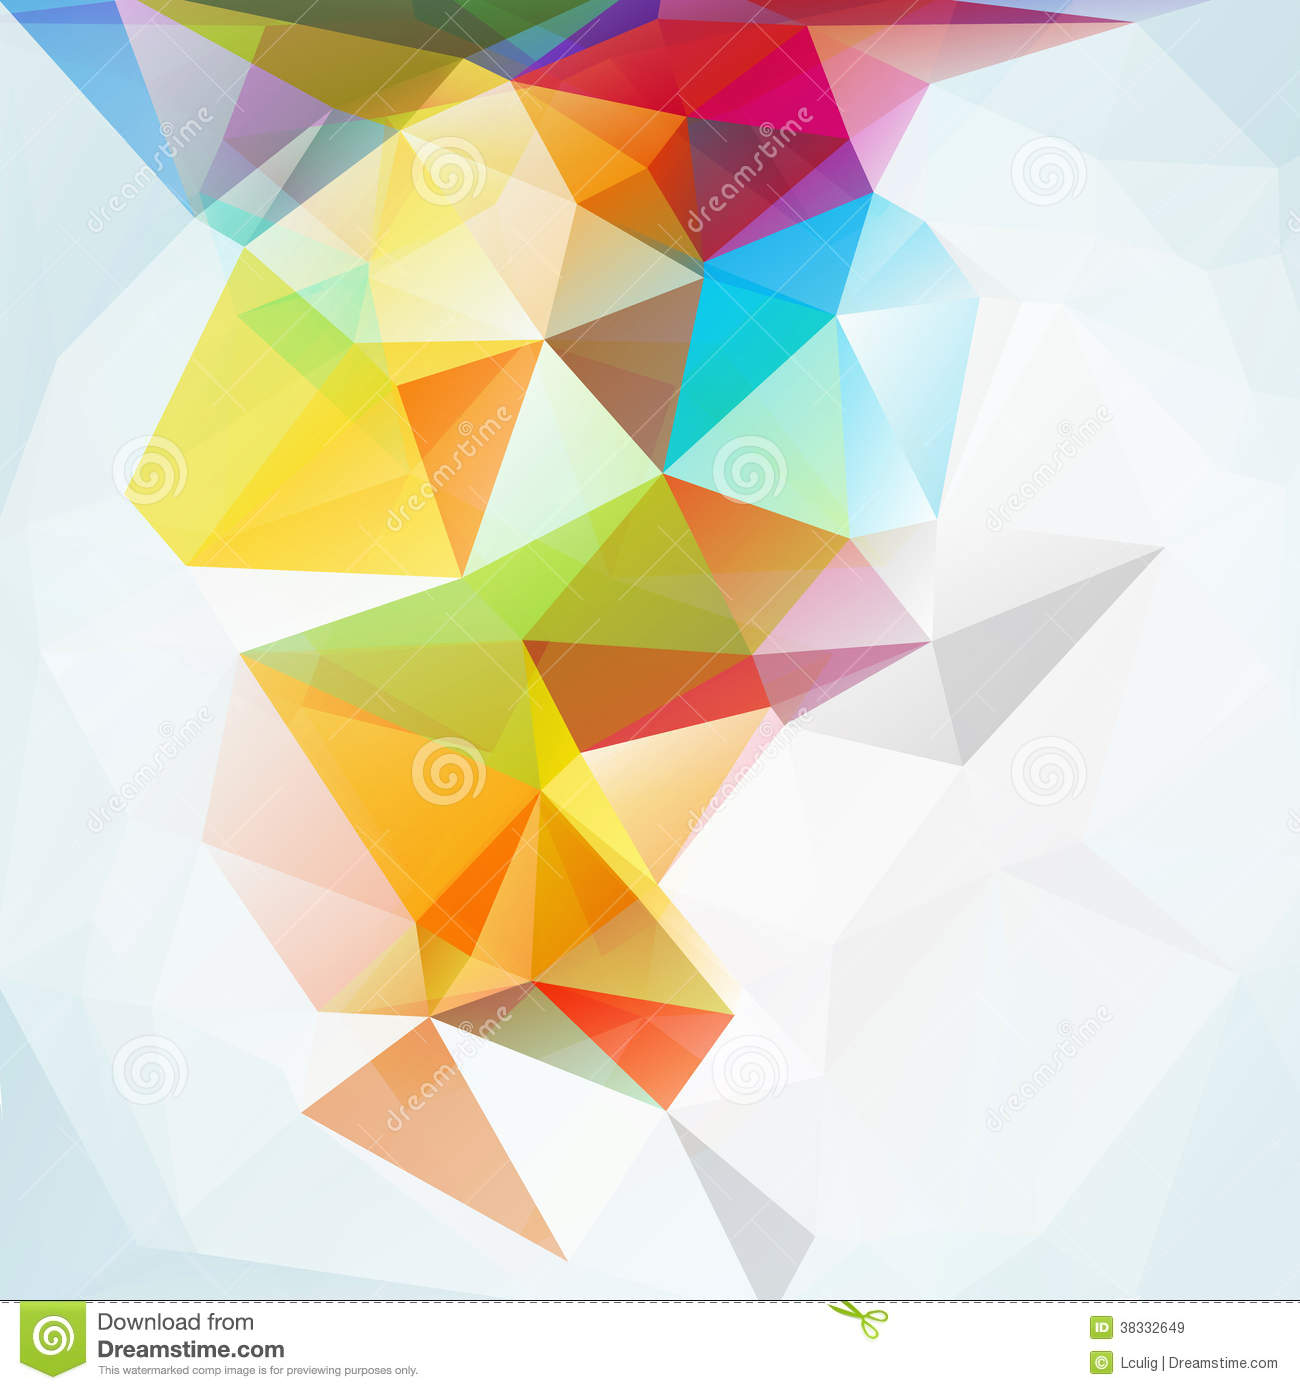 polygon shape abstract design - photo #33